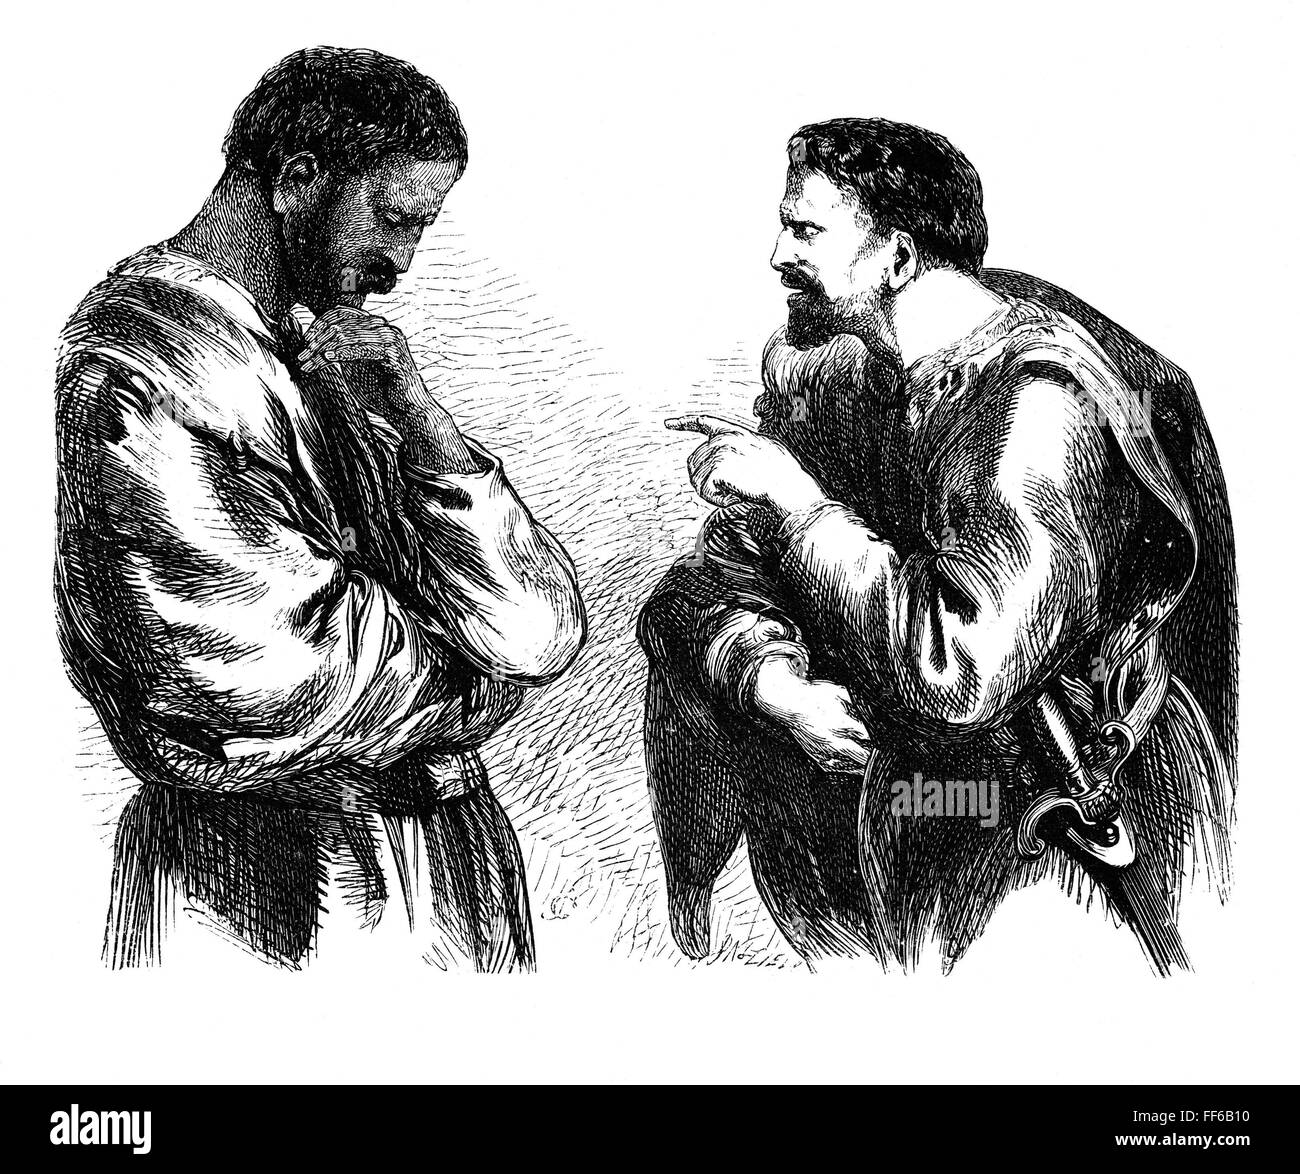 iago s manipulation Paper details: it is not iago's manipulation, but othello's gullibility, which causes the play's tragic ending discuss this statement supporting your answer with suitable reference and quotation from the text.